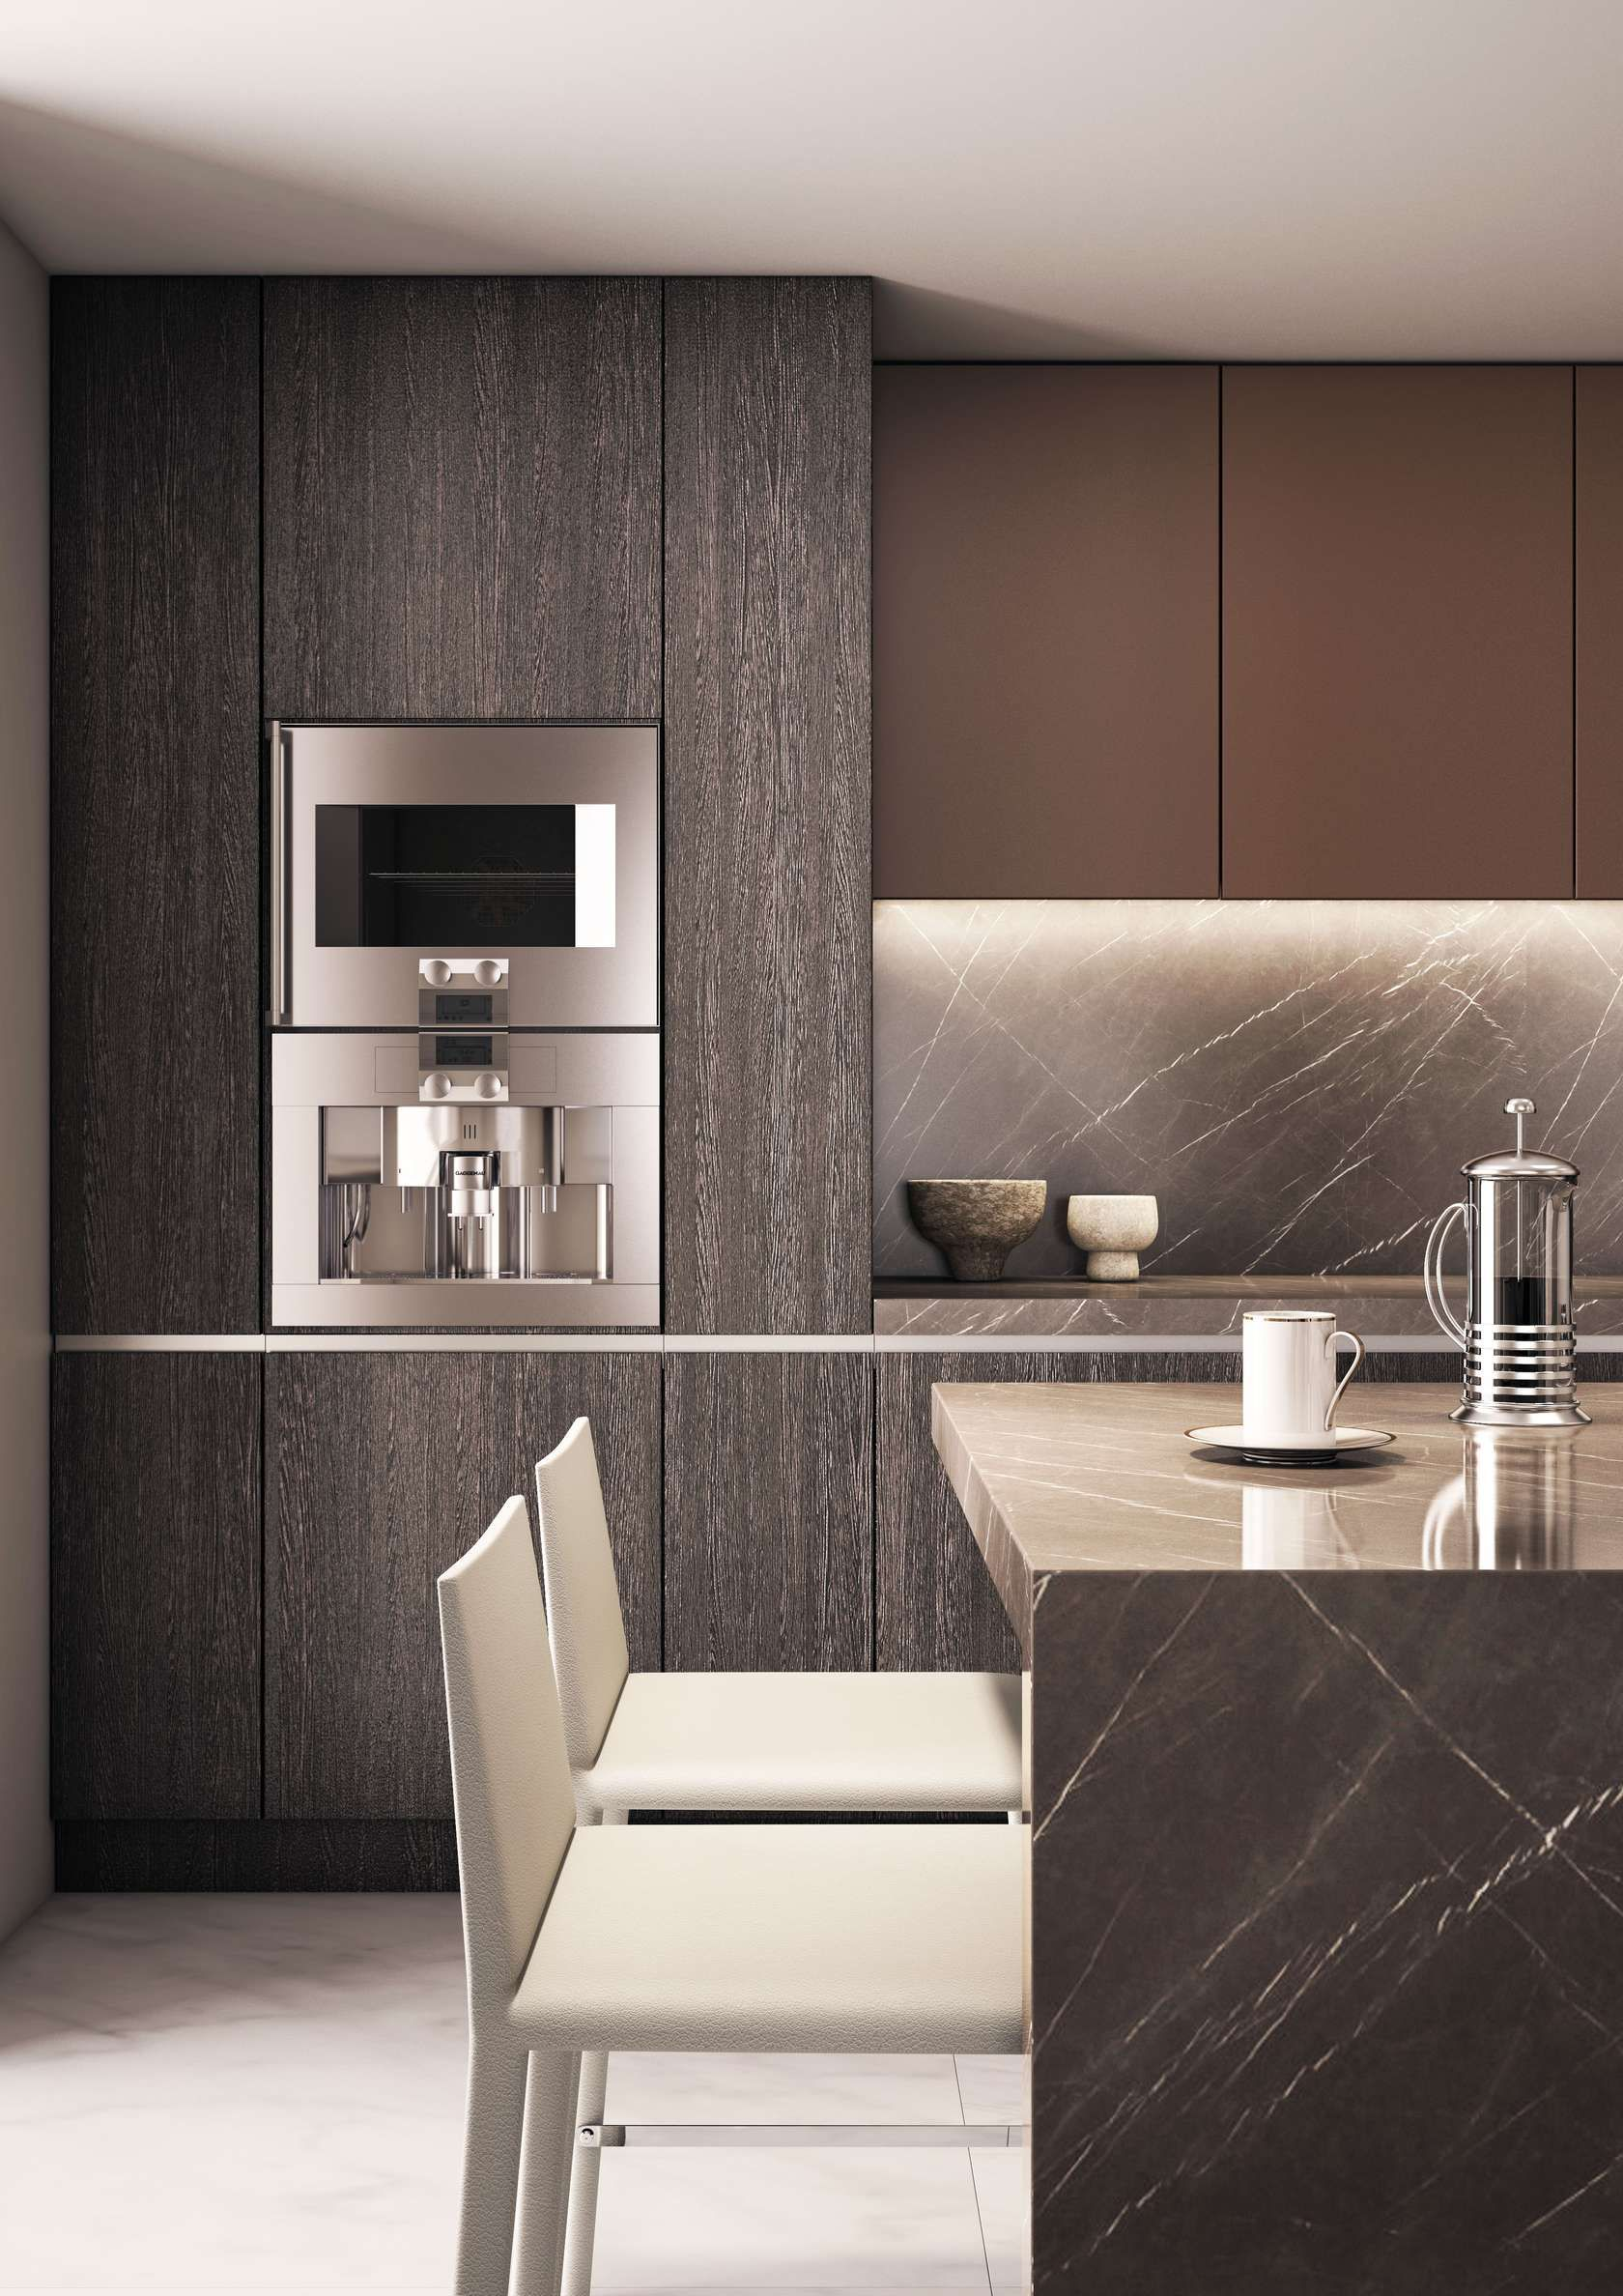 Maybe the kitchen should be tone on tone with hits of light and dark